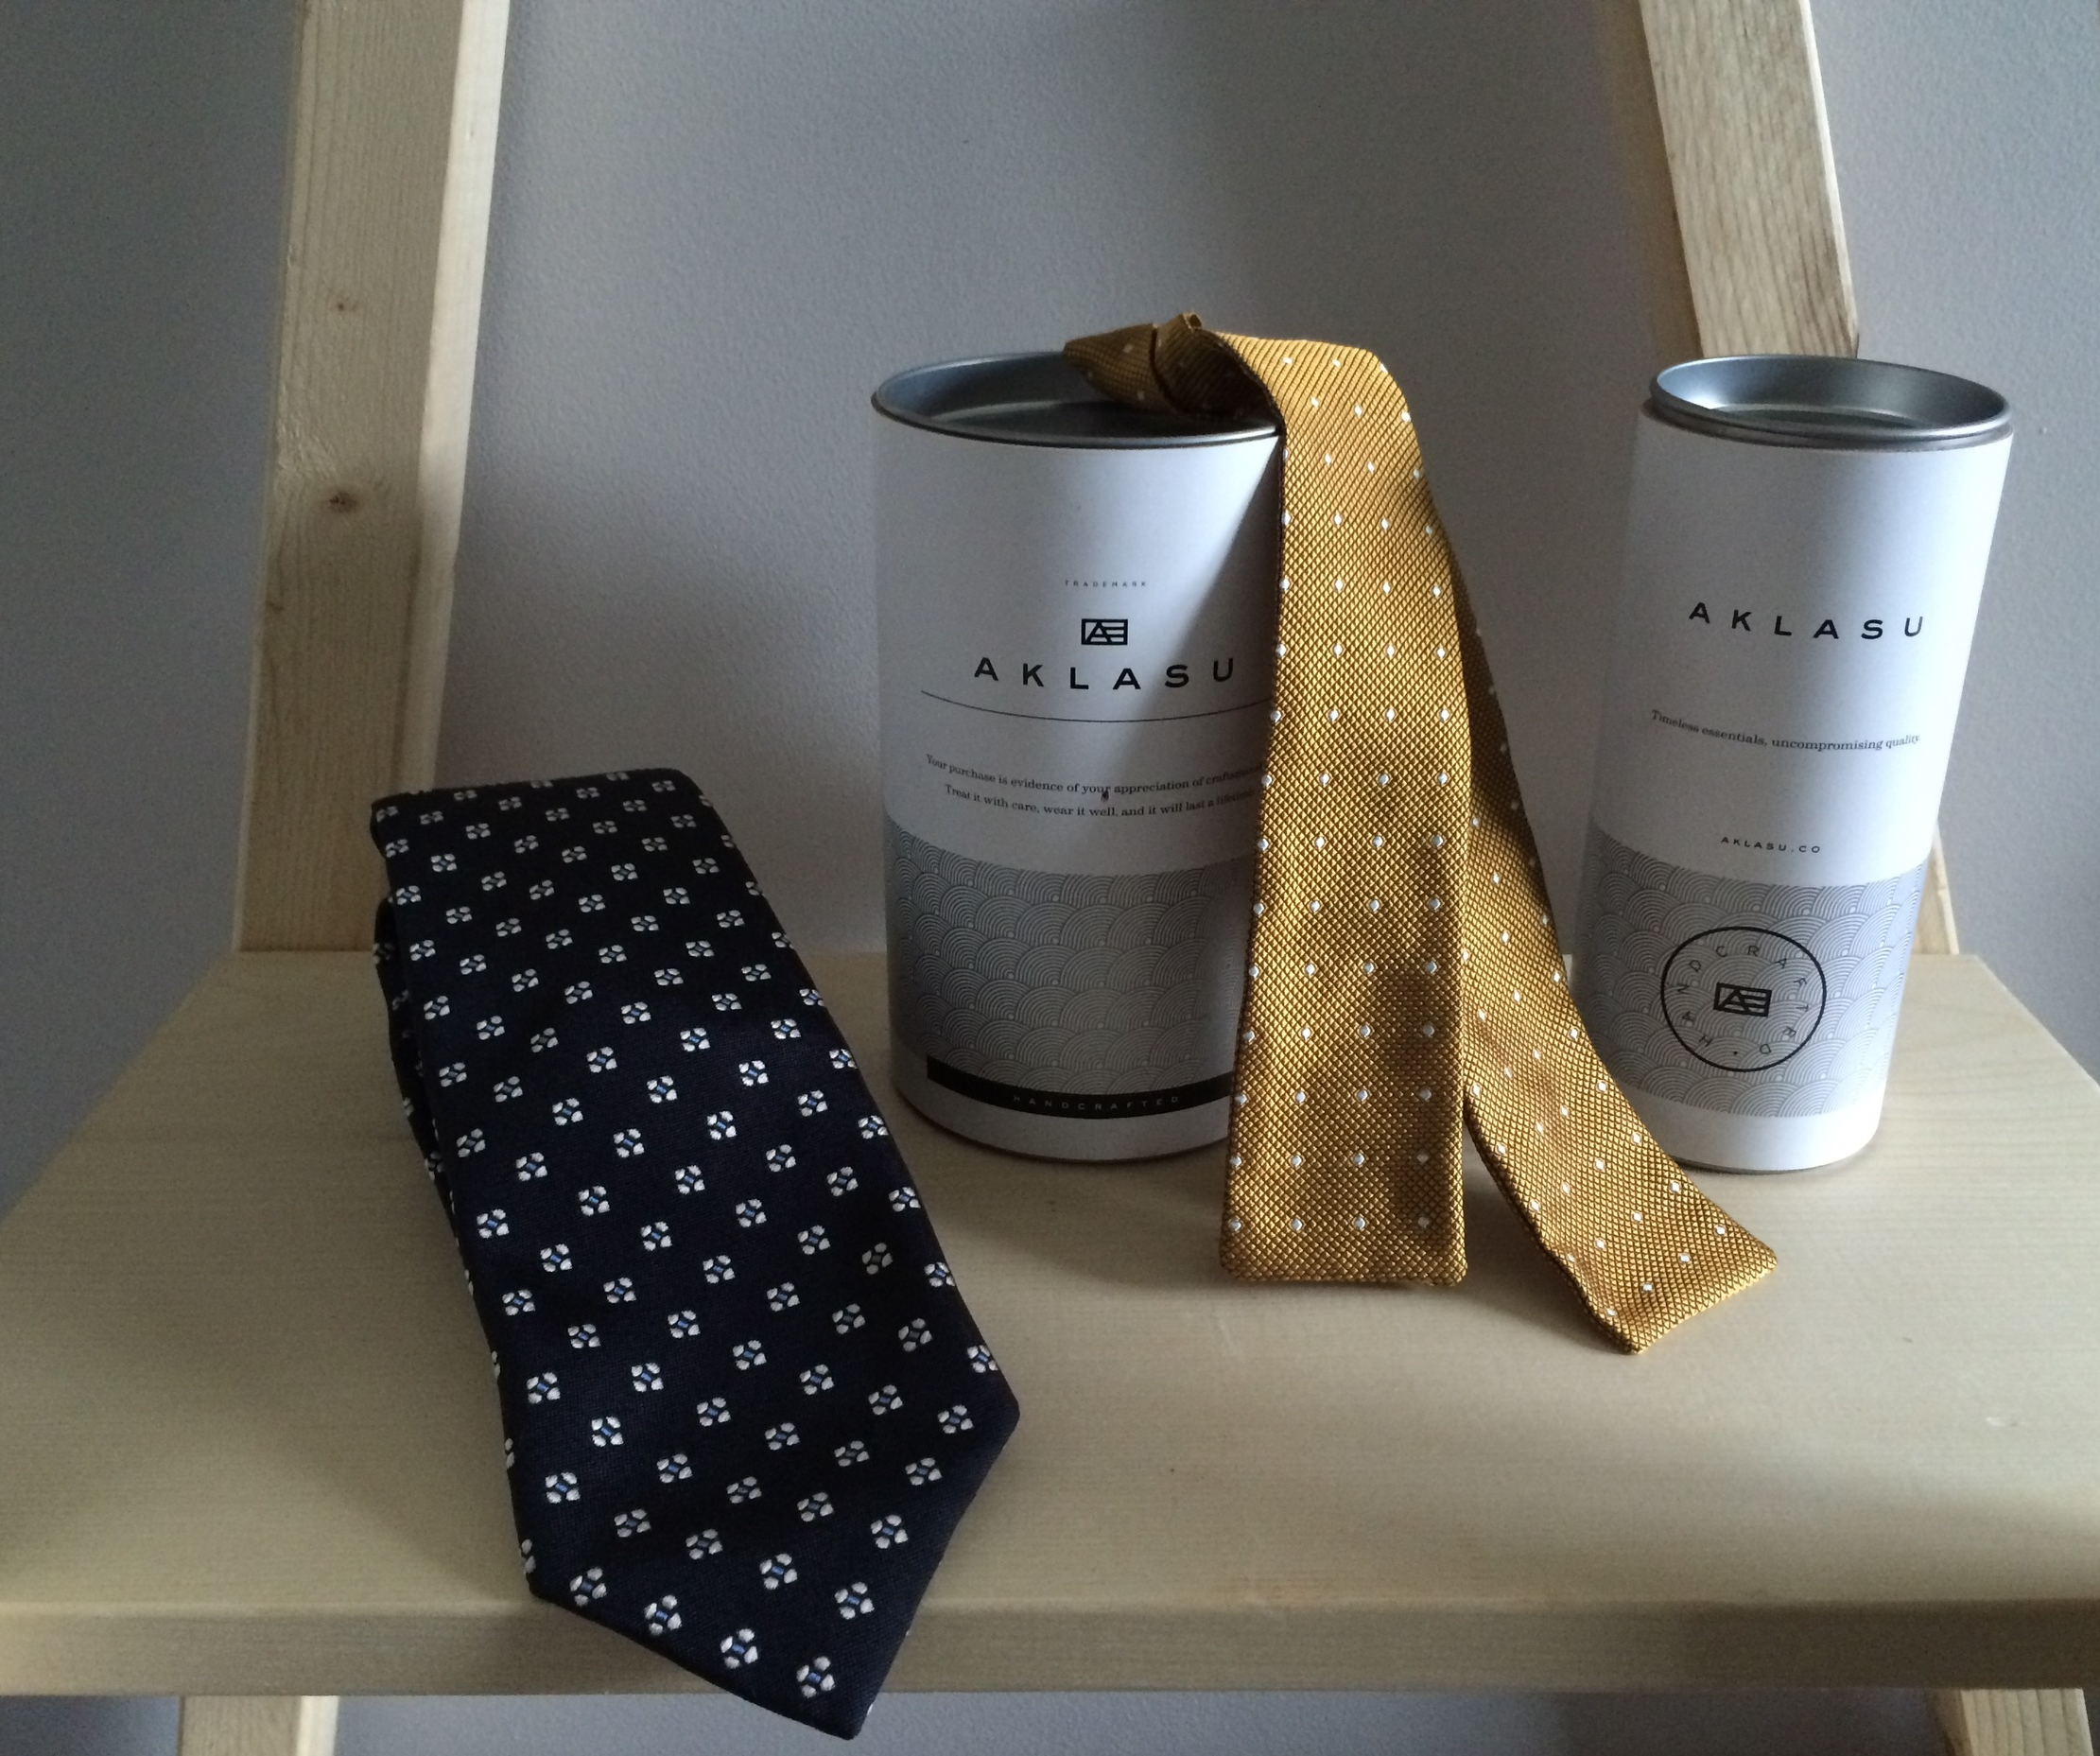 AKLASU tie, bowtie and storage canisters.